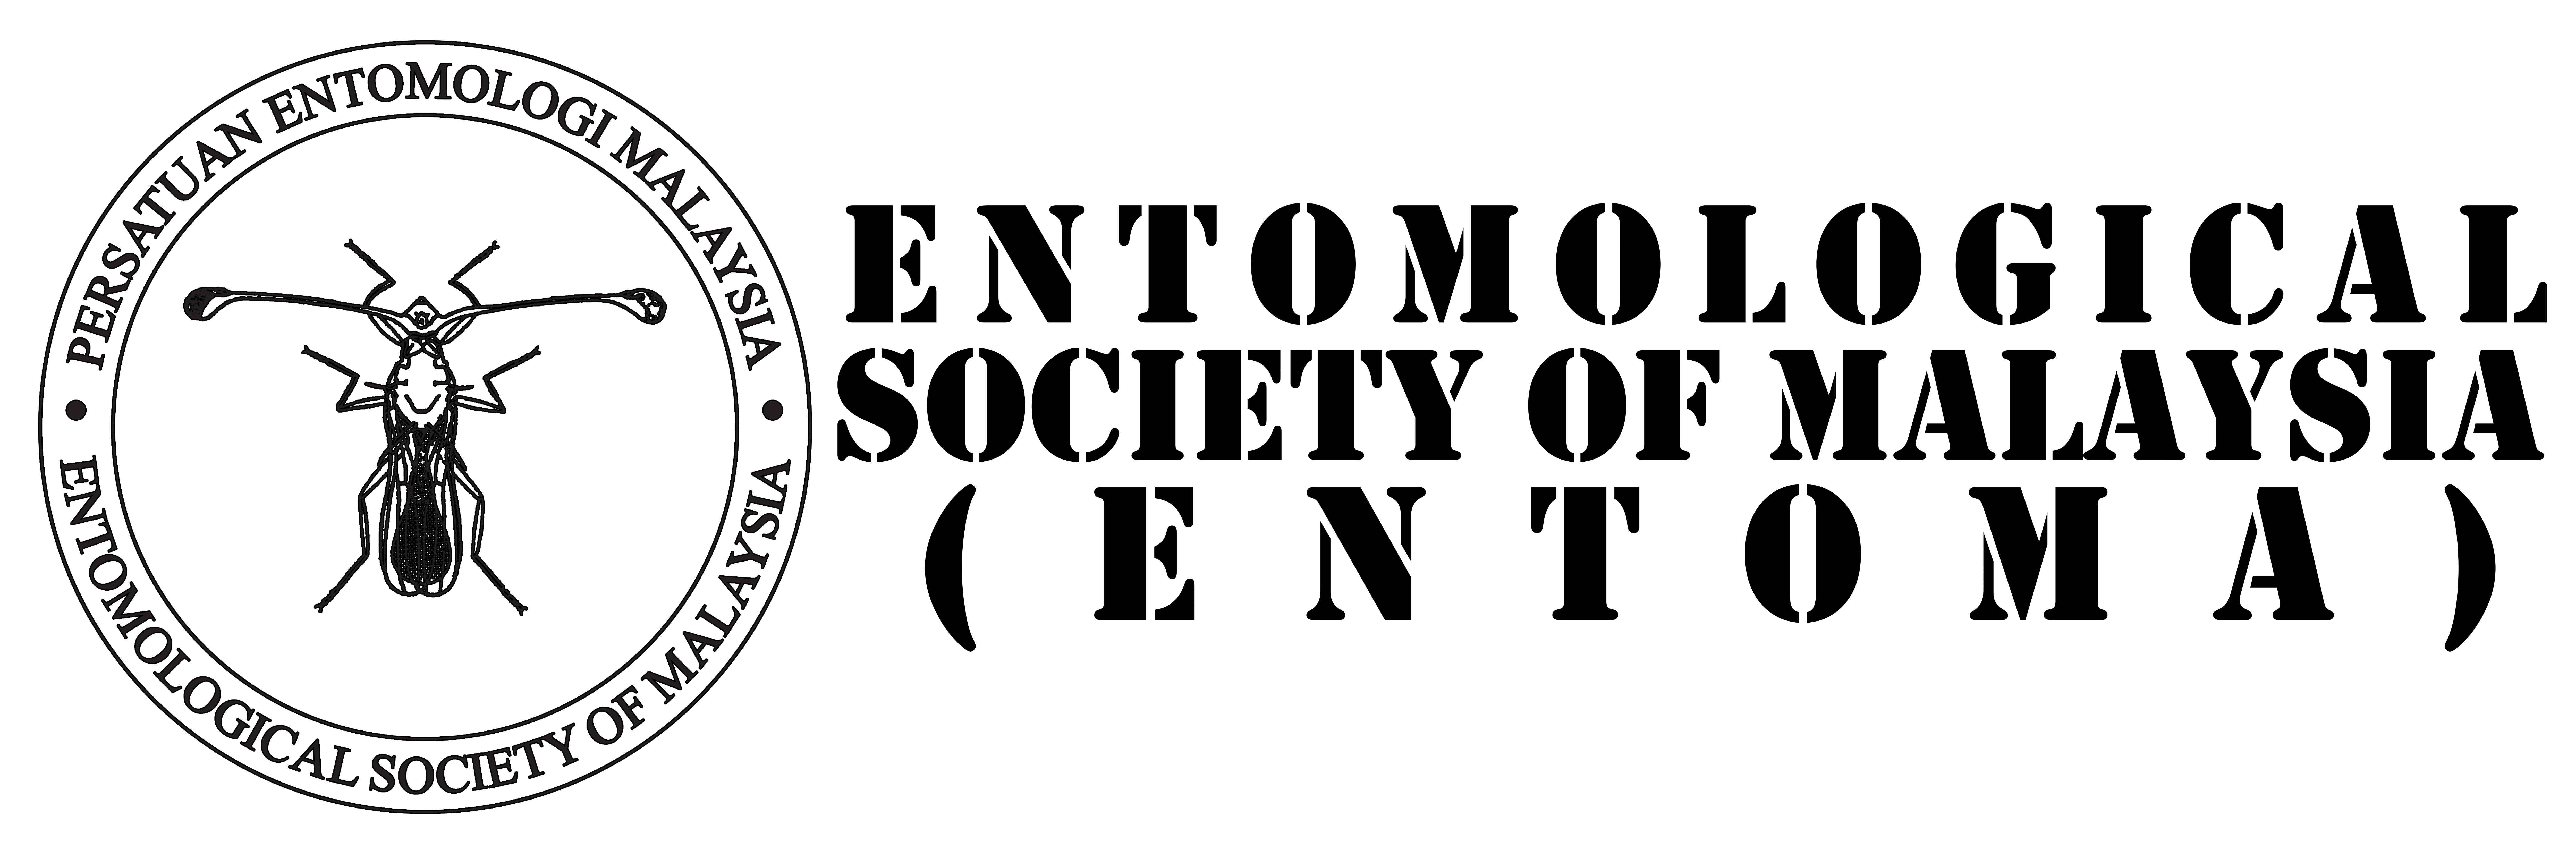 entoma_logo with name-min